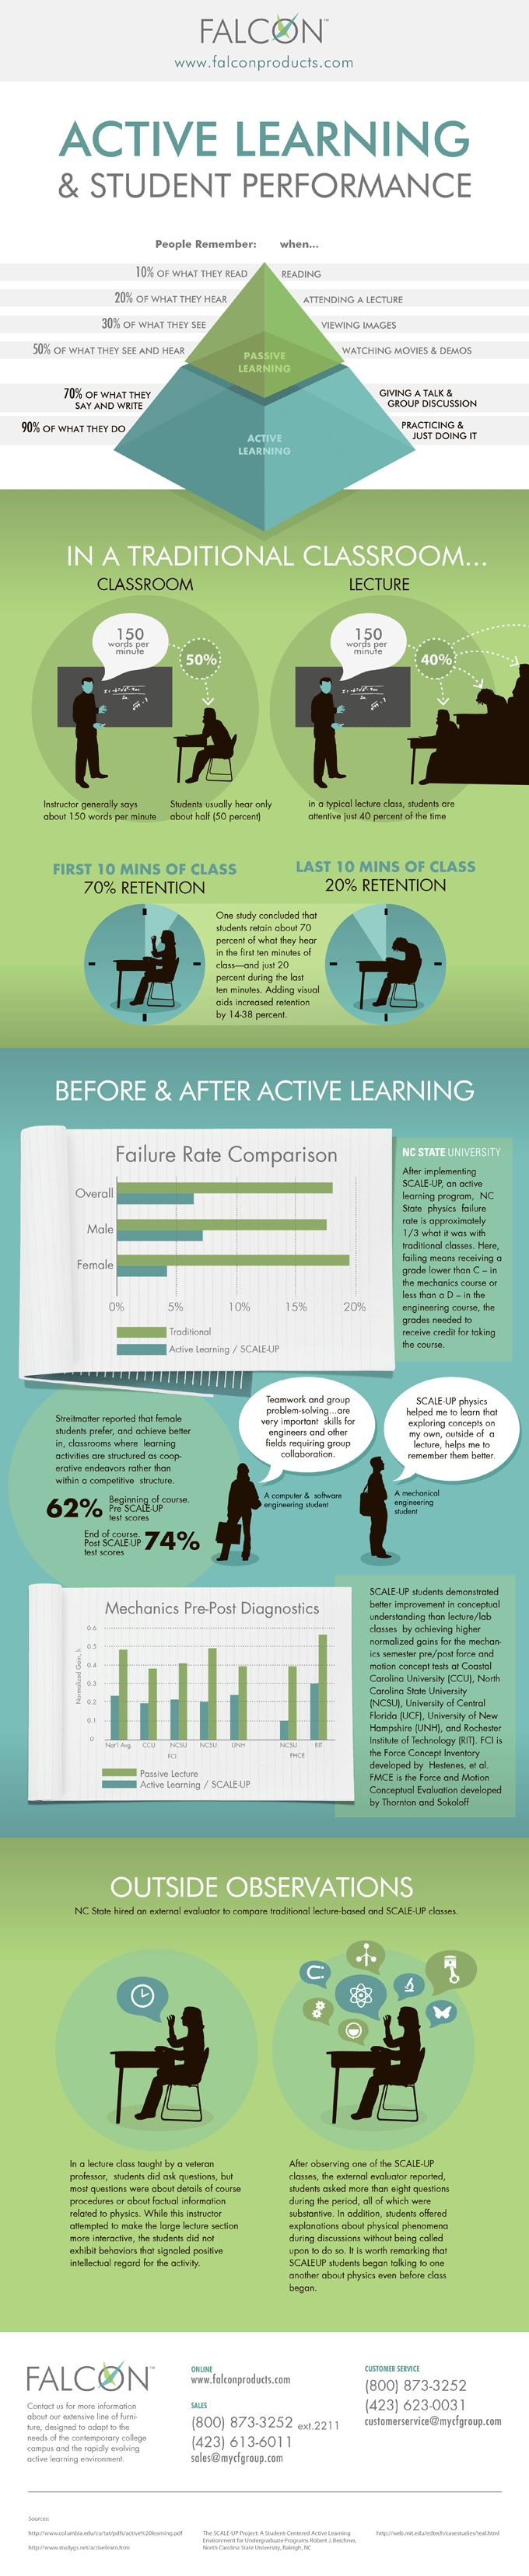 Active Learning & Student Performance